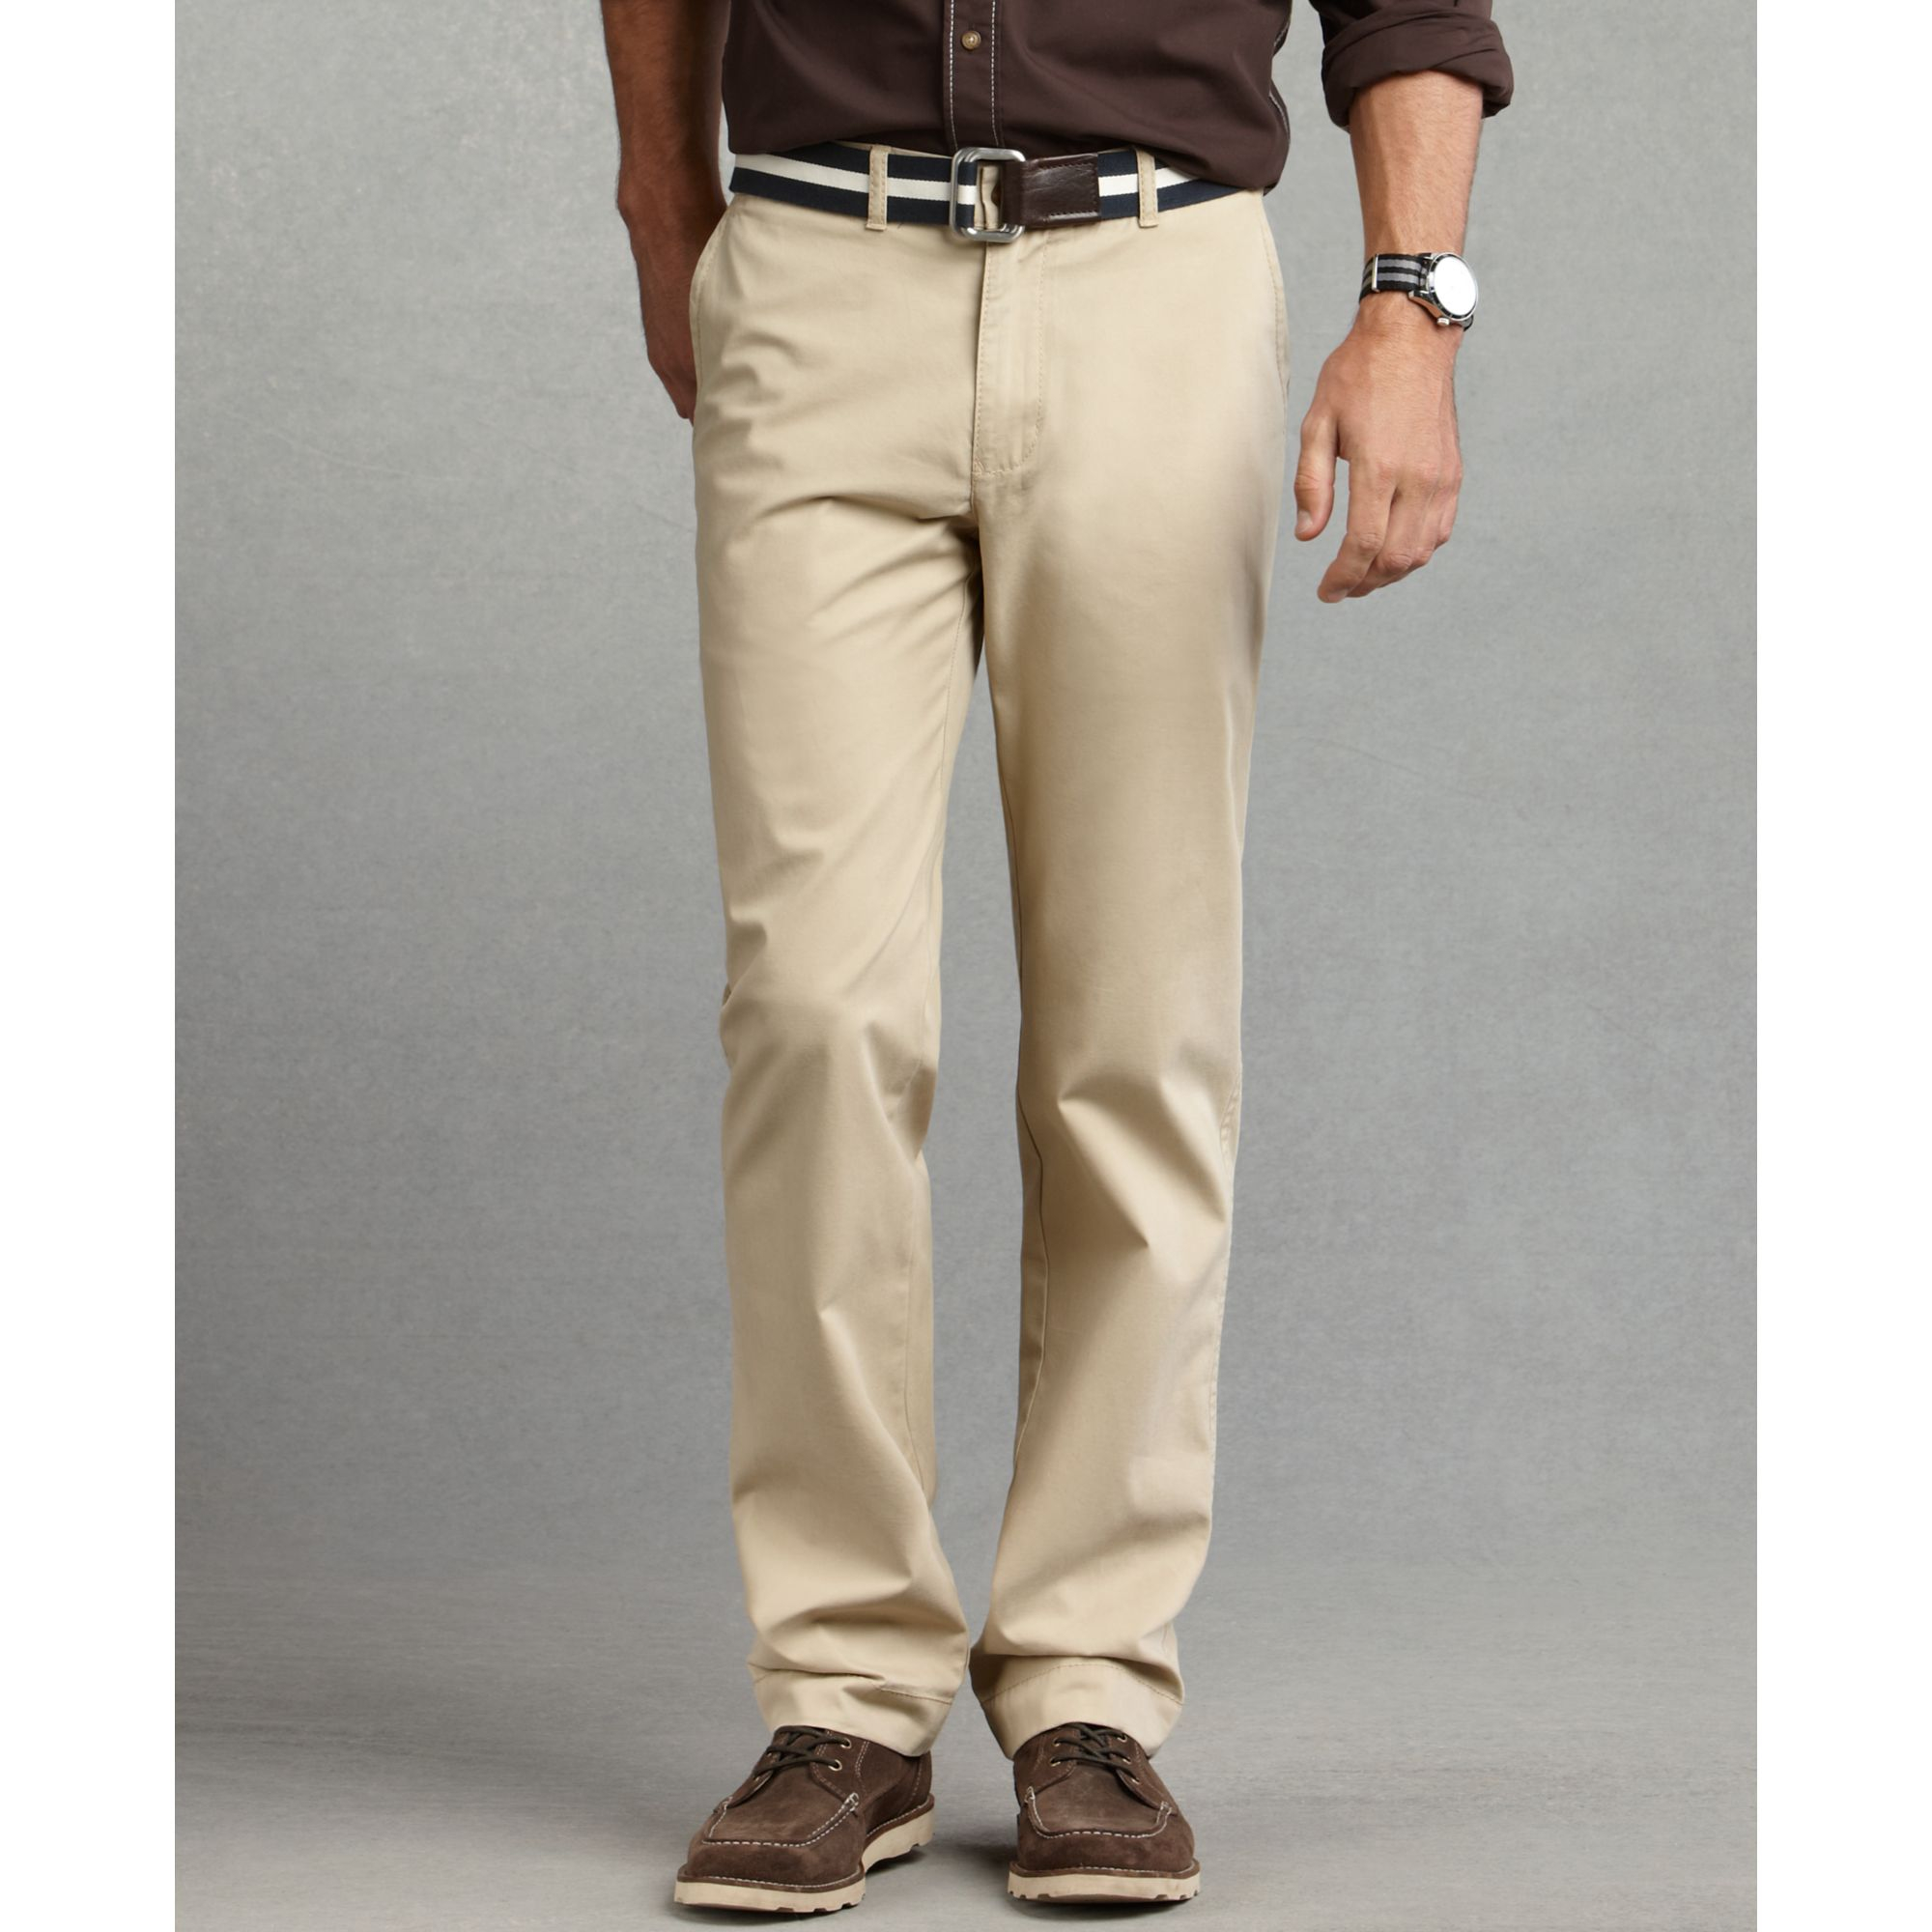 7b1c82ba Tommy Hilfiger Graduate Slim Fit Chinos in Natural for Men - Lyst